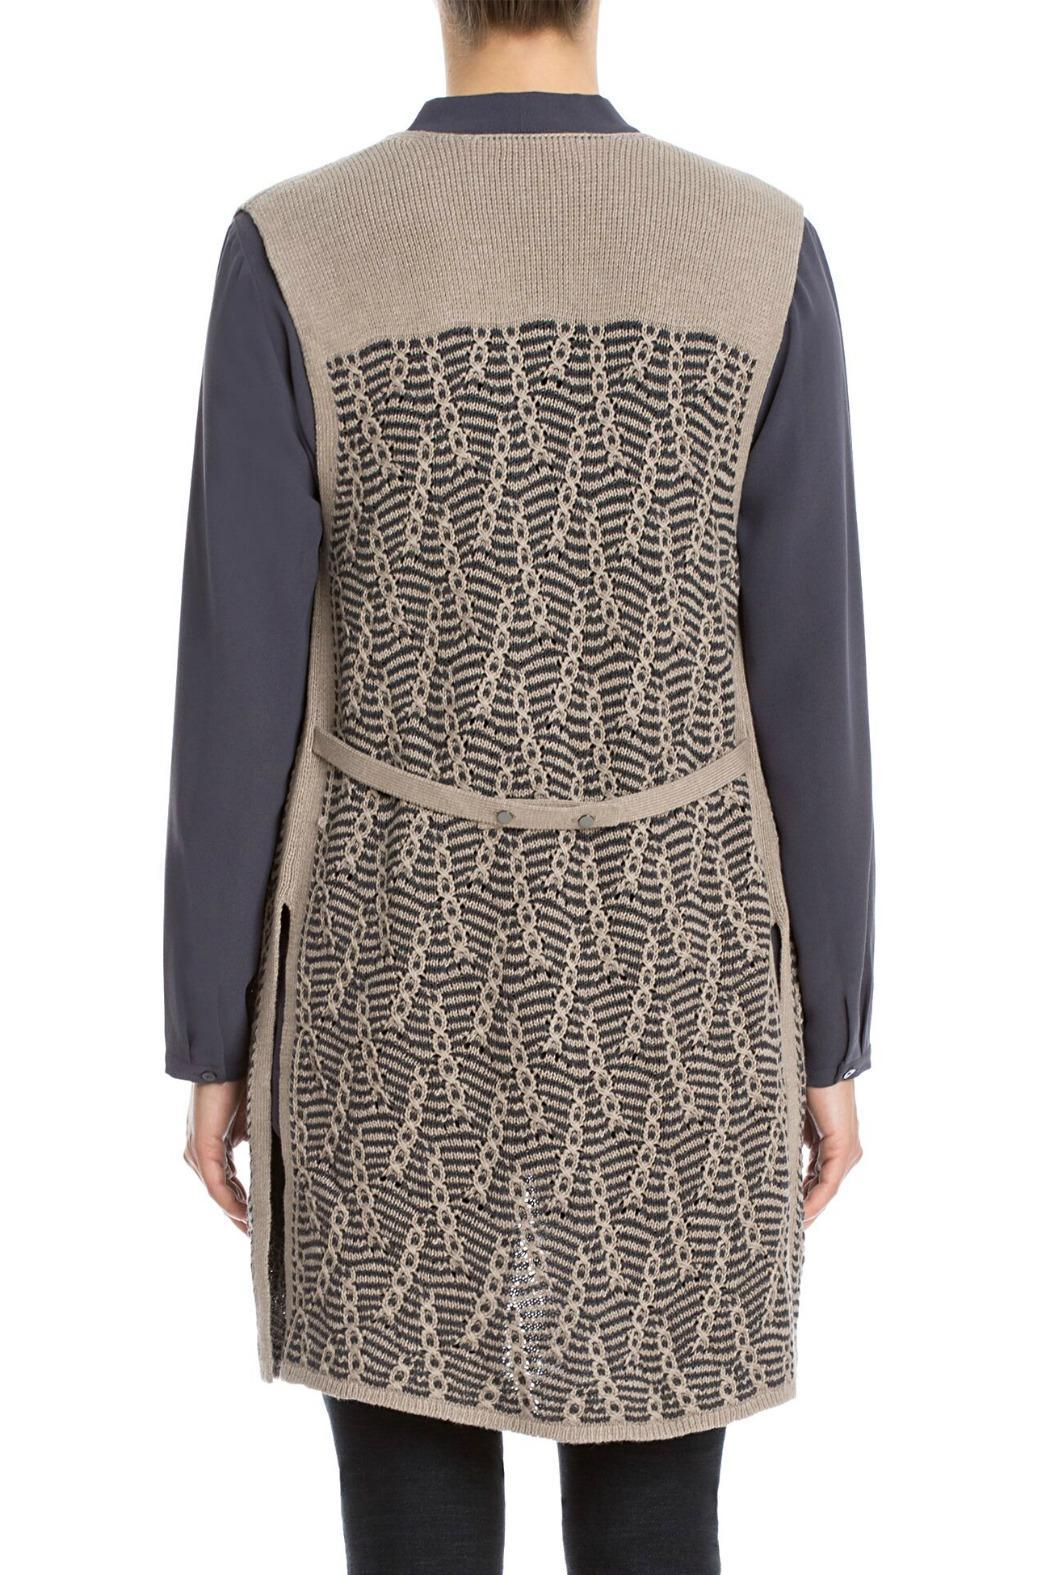 Nic + Zoe Traveling Cables Vest - Front Full Image